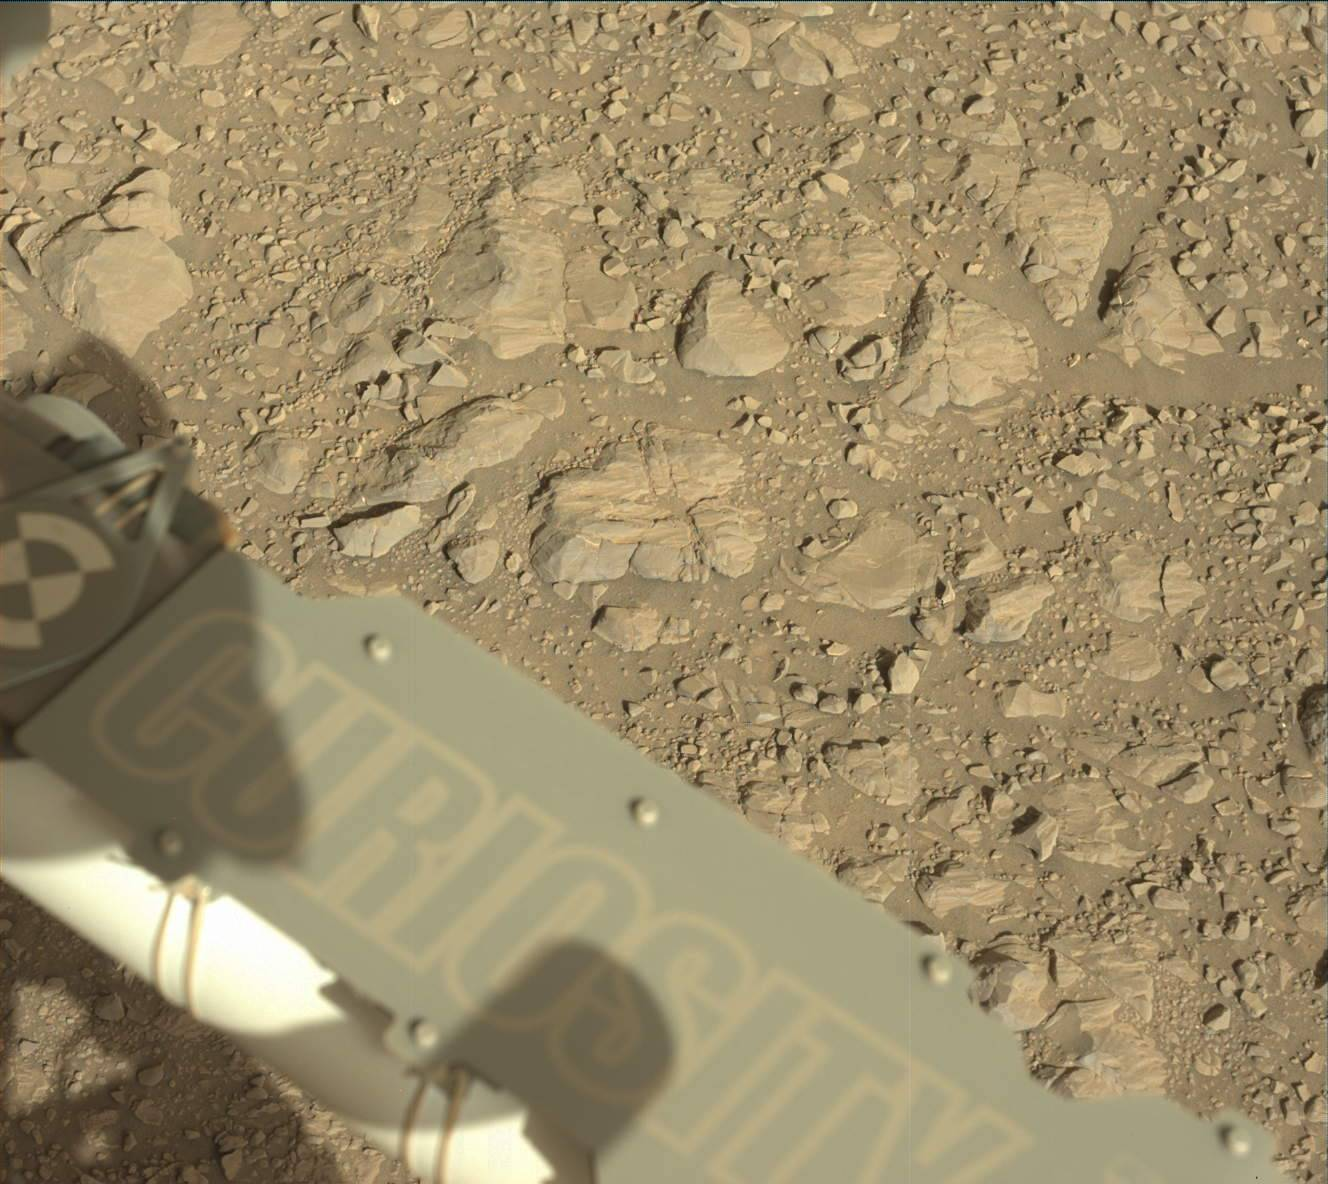 Nasa's Mars rover Curiosity acquired this image using its Mast Camera (Mastcam) on Sol 1986